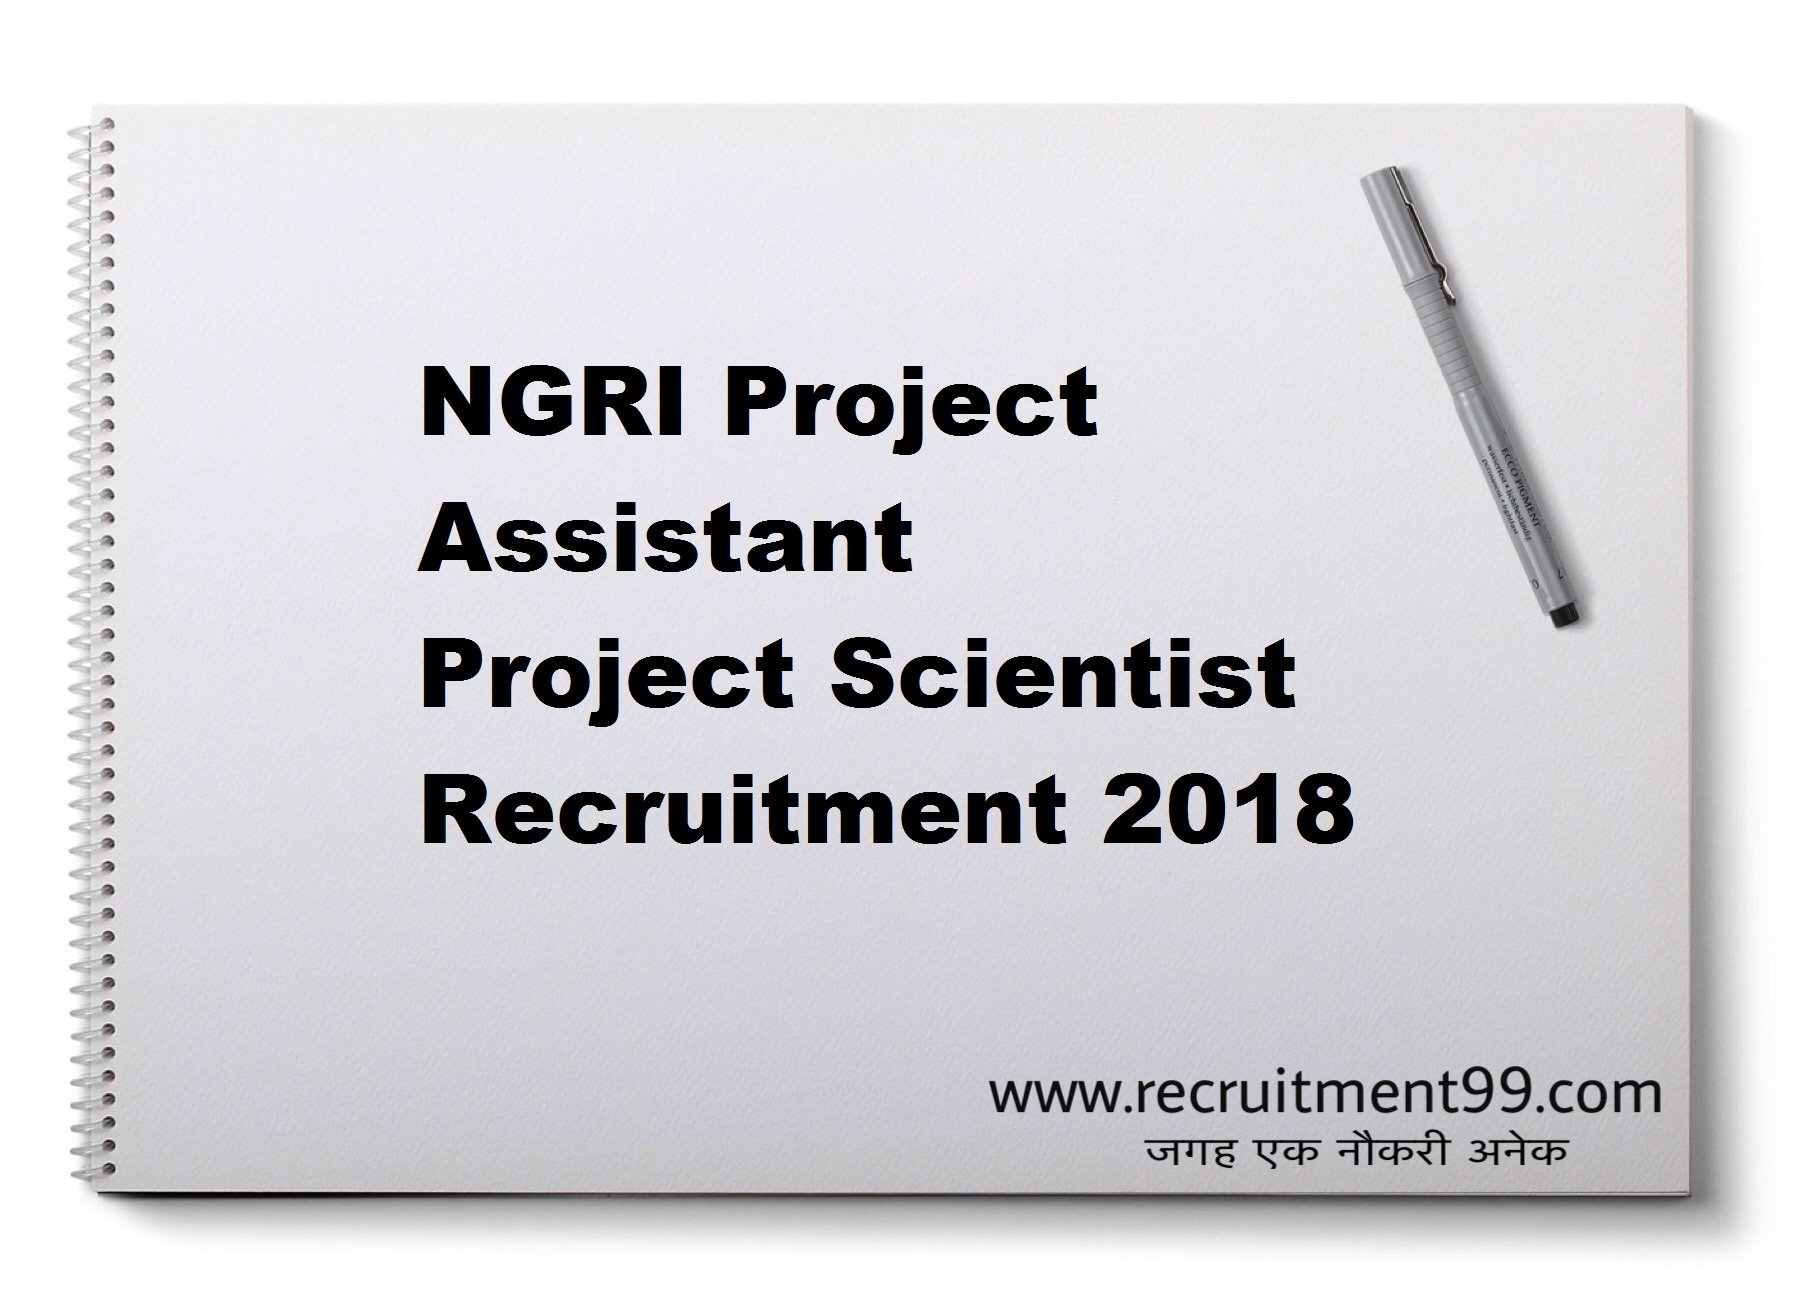 NGRI Project Assistant Project Scientist Recruitment Admit Card Result 2018